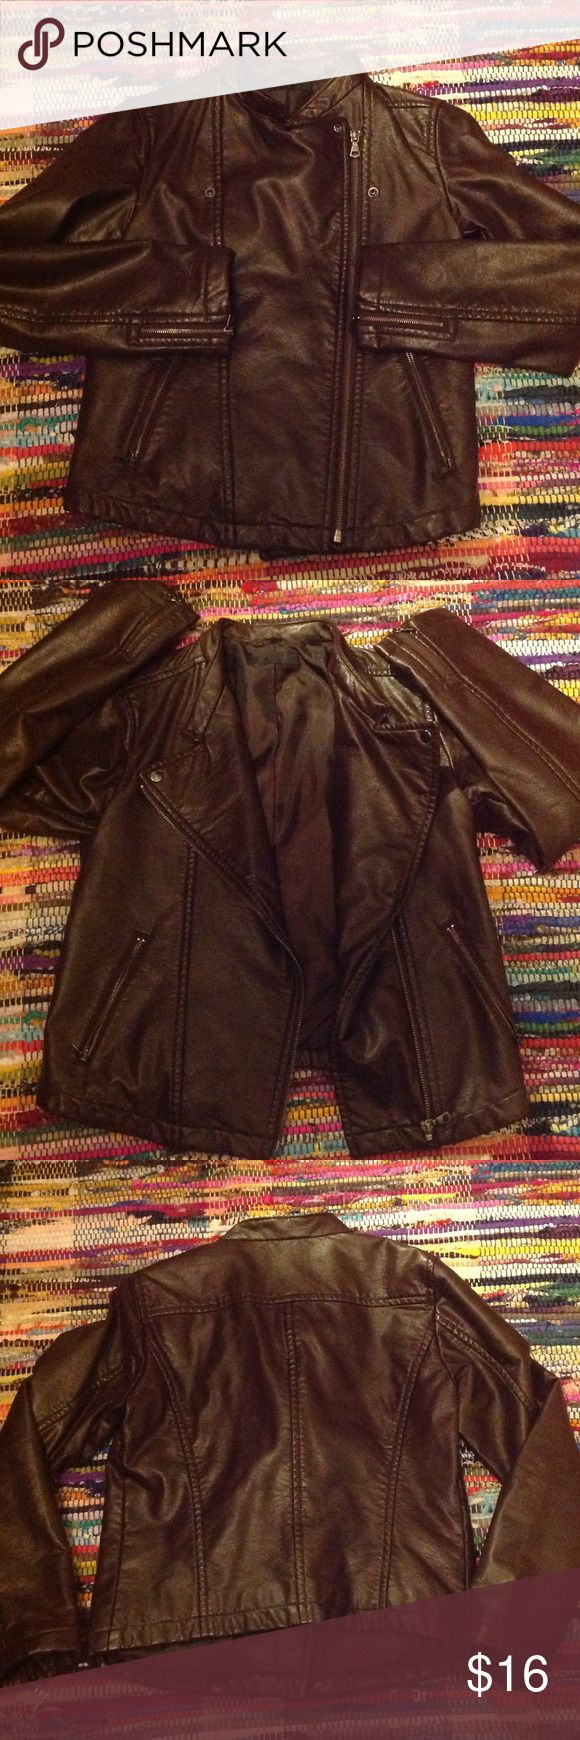 """✨Uniqlo Awesome biker style jacket ❣️ I love this jacket but it's been sitting in my closet for a long time. Faux soft leather. Color brown like rich milk chocolate. Great fit. In excellent condition. Size small. Measurements lying flat: armpit to armpit 16"""". Shoulder to waist 21"""" . Arms 22"""". My home is pets and smoke free. Bundle and save 15%✨ Uniqlo Jackets & Coats Utility Jackets"""